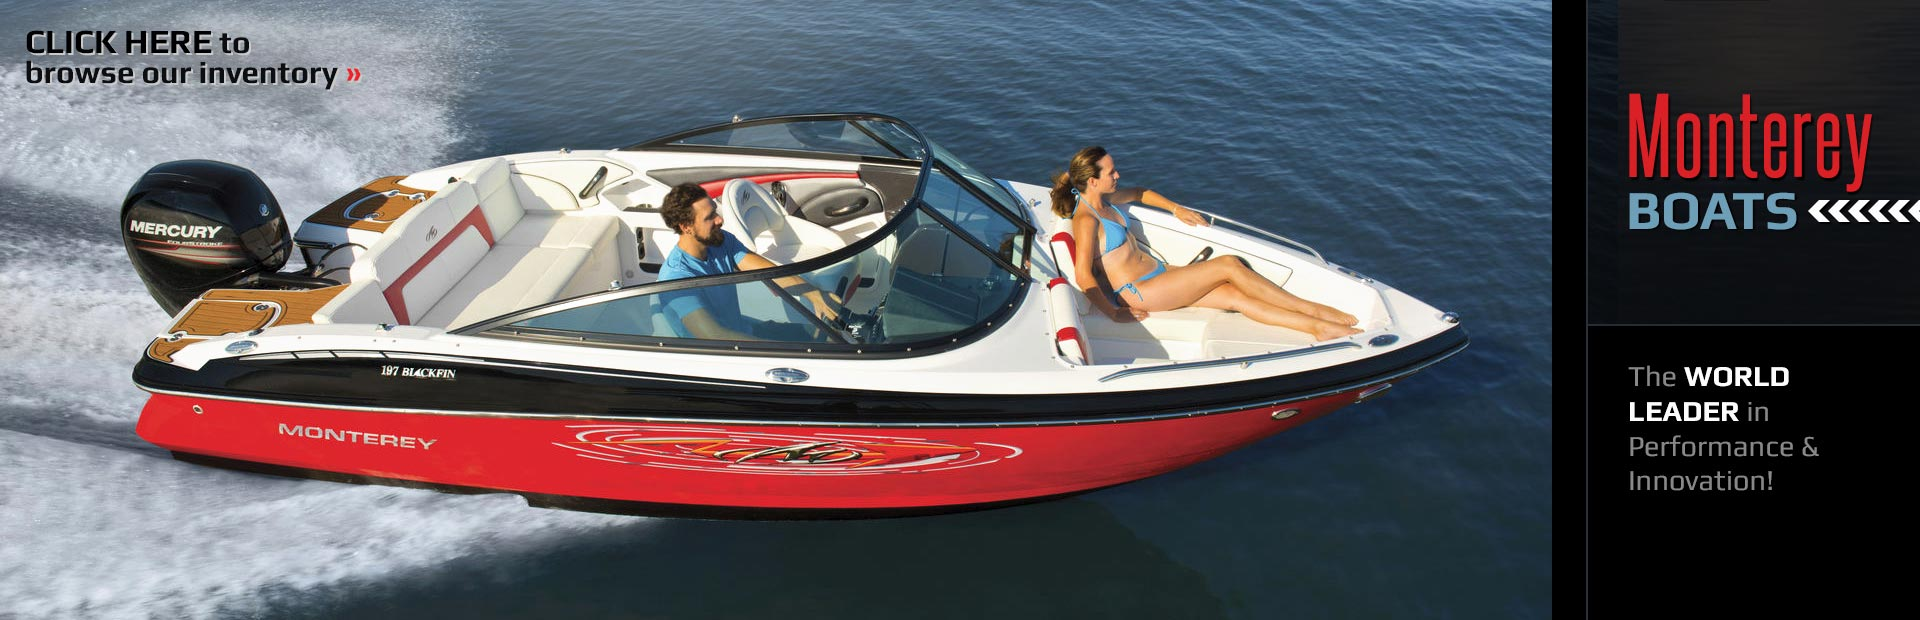 Monterey Boats: Click here to browse our inventory.